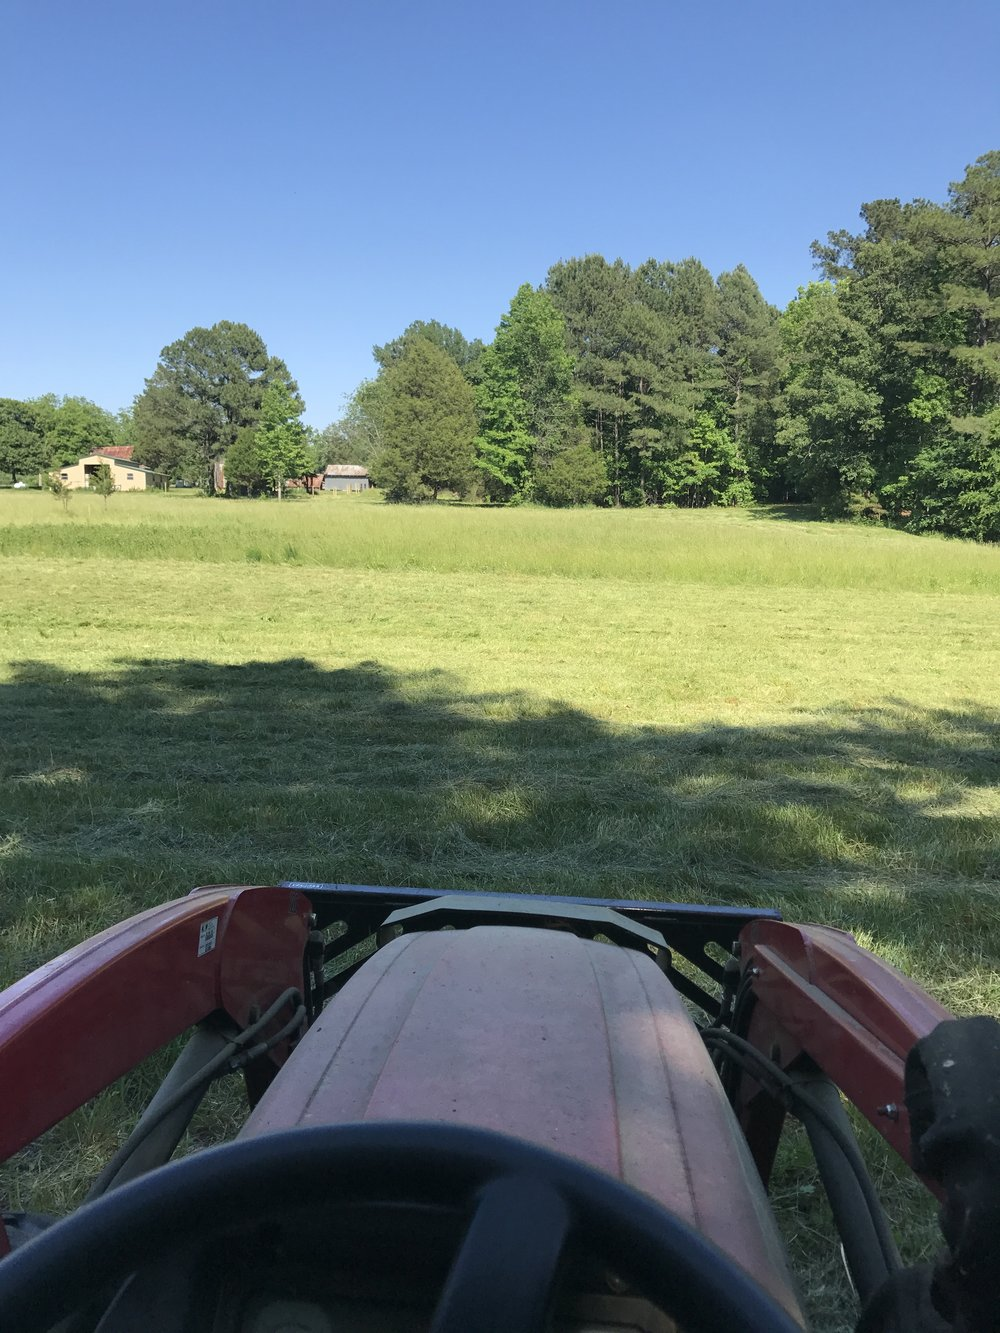 Taking a break from making hay. This is a view from the side pastures towards the back of the workshop.